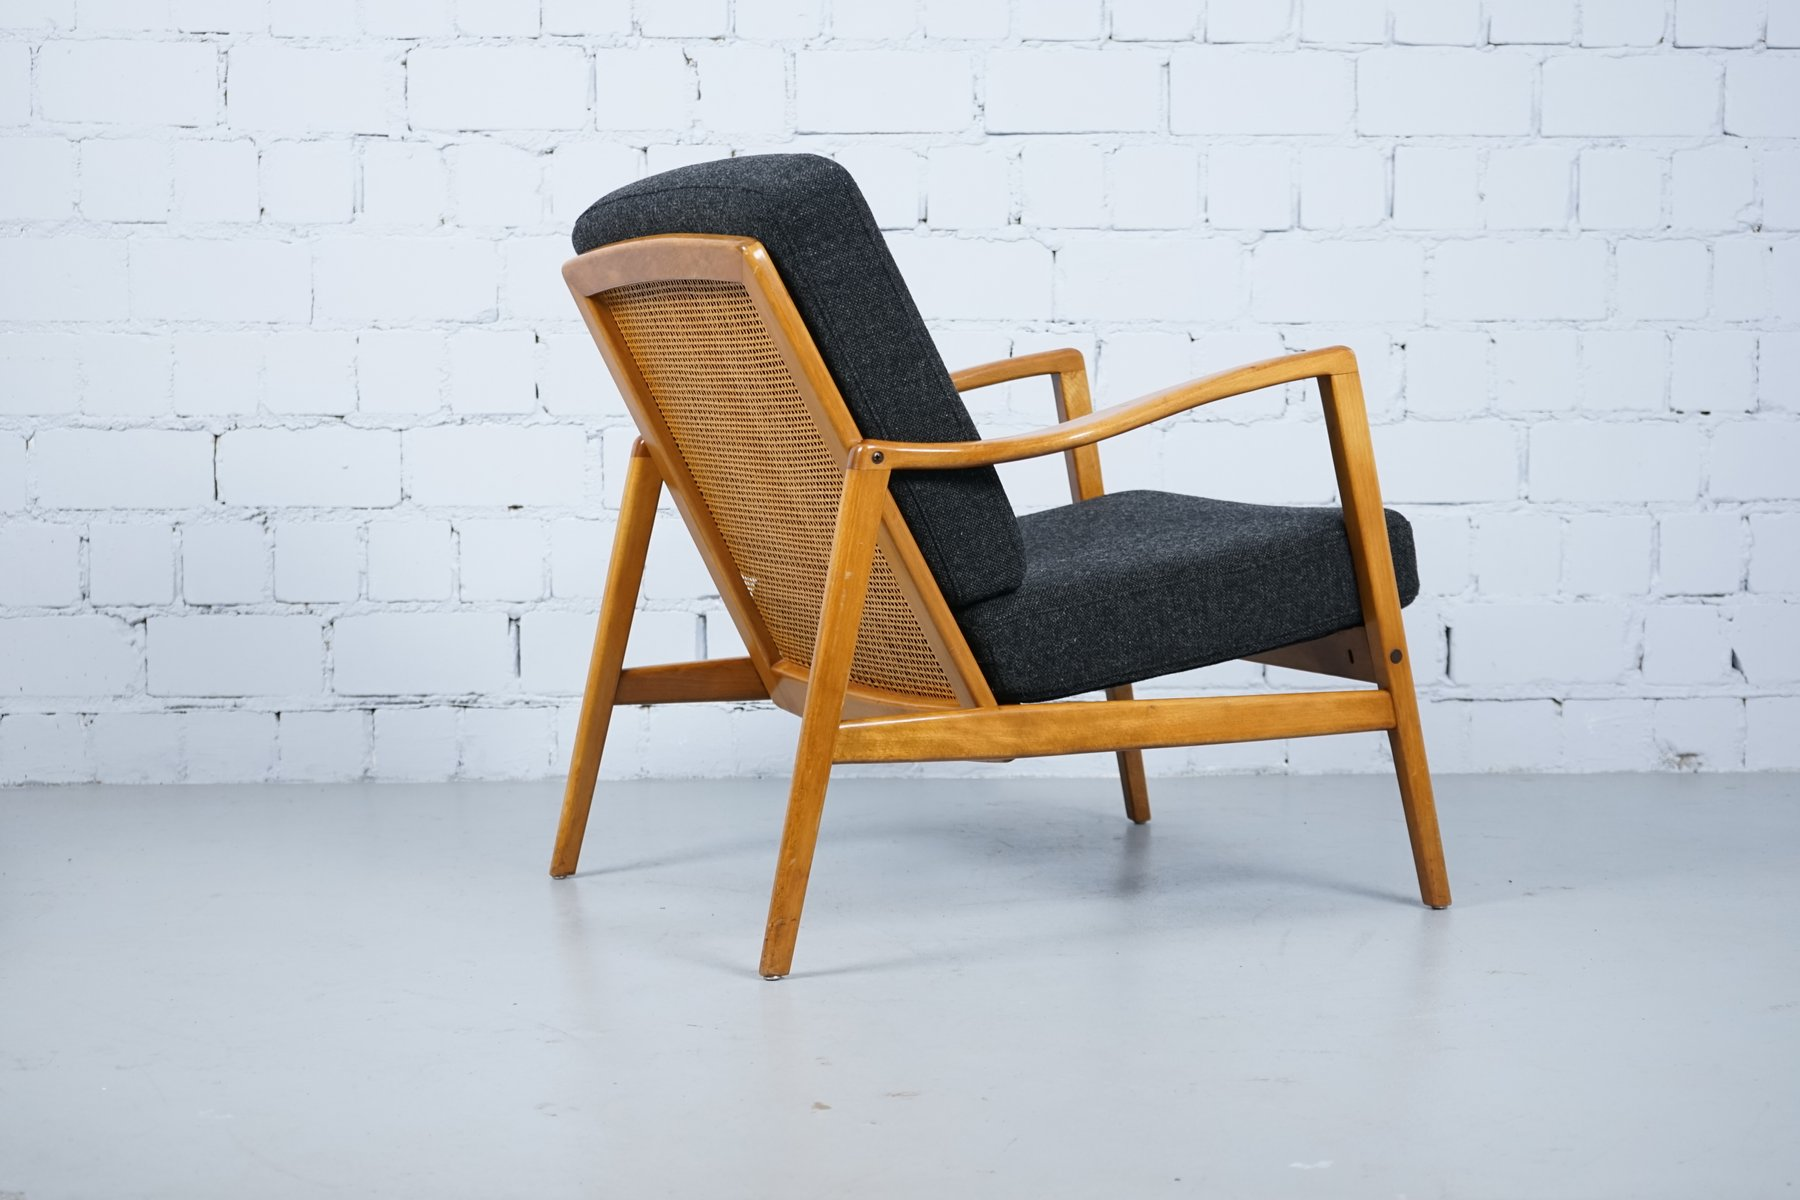 Wilkhahn Sessel Lounge Chair By Hartmut Lohmeyer For Wilkhahn 1950s